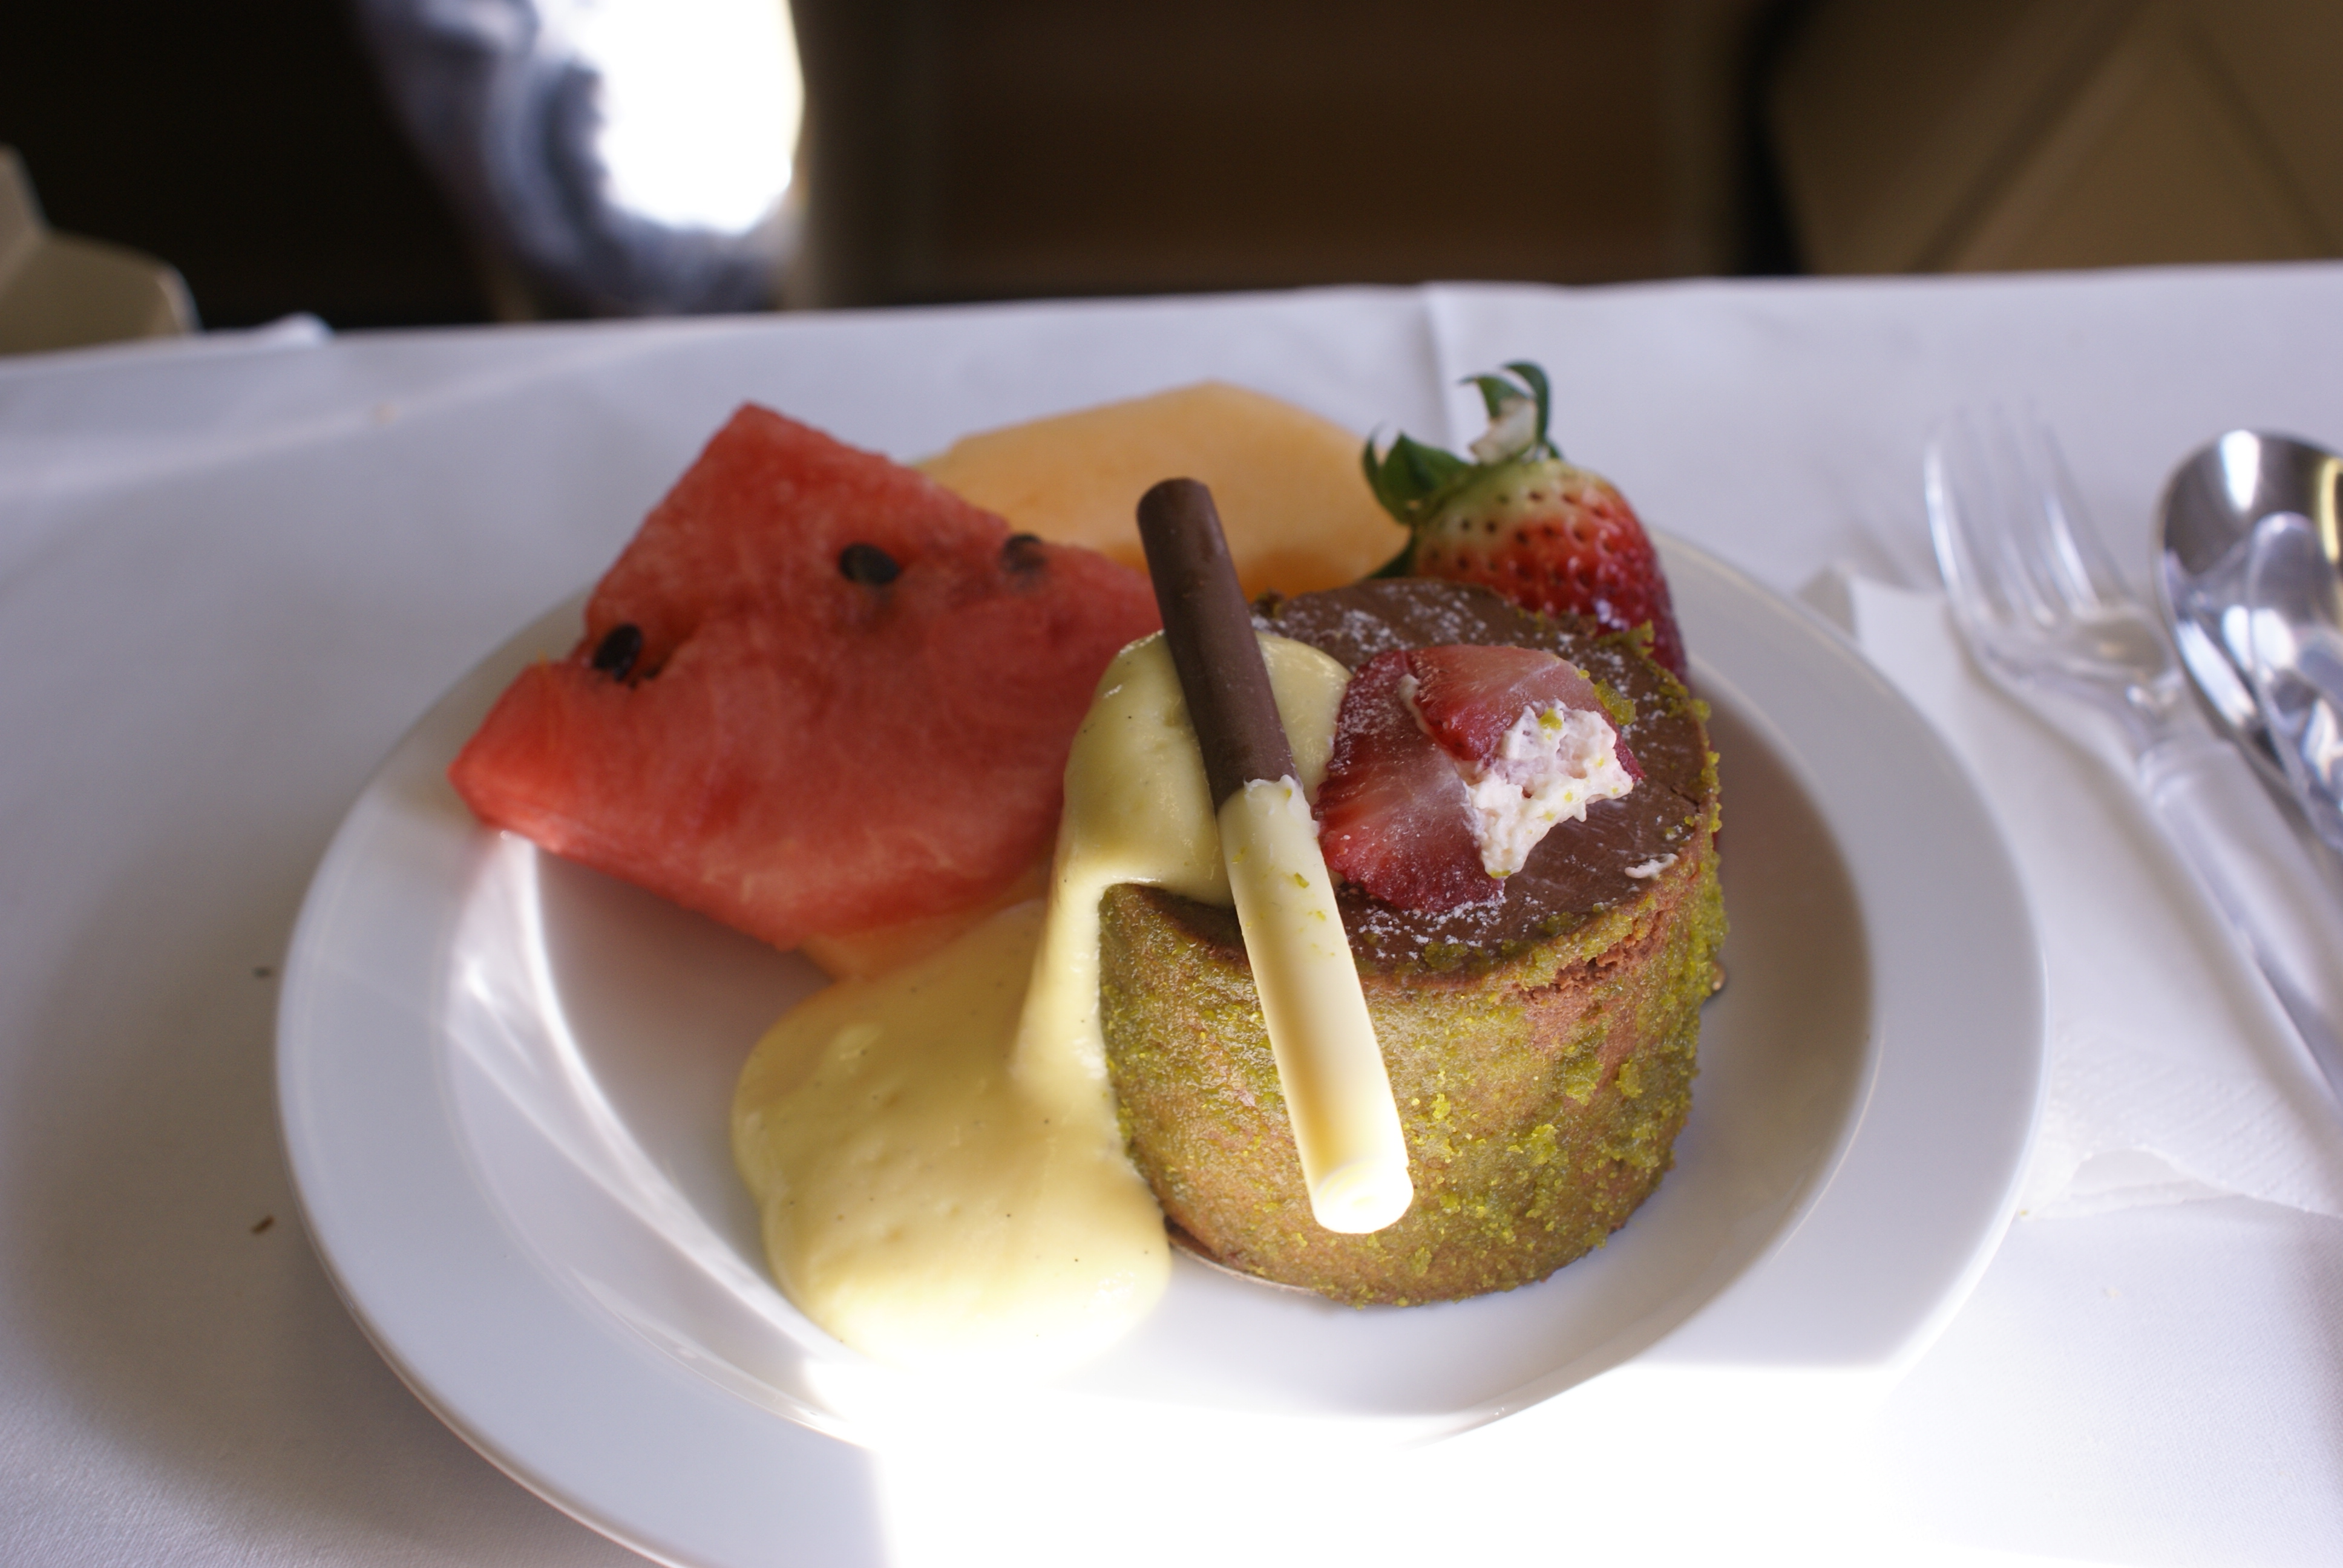 Business class flights: the desert from a three course meal